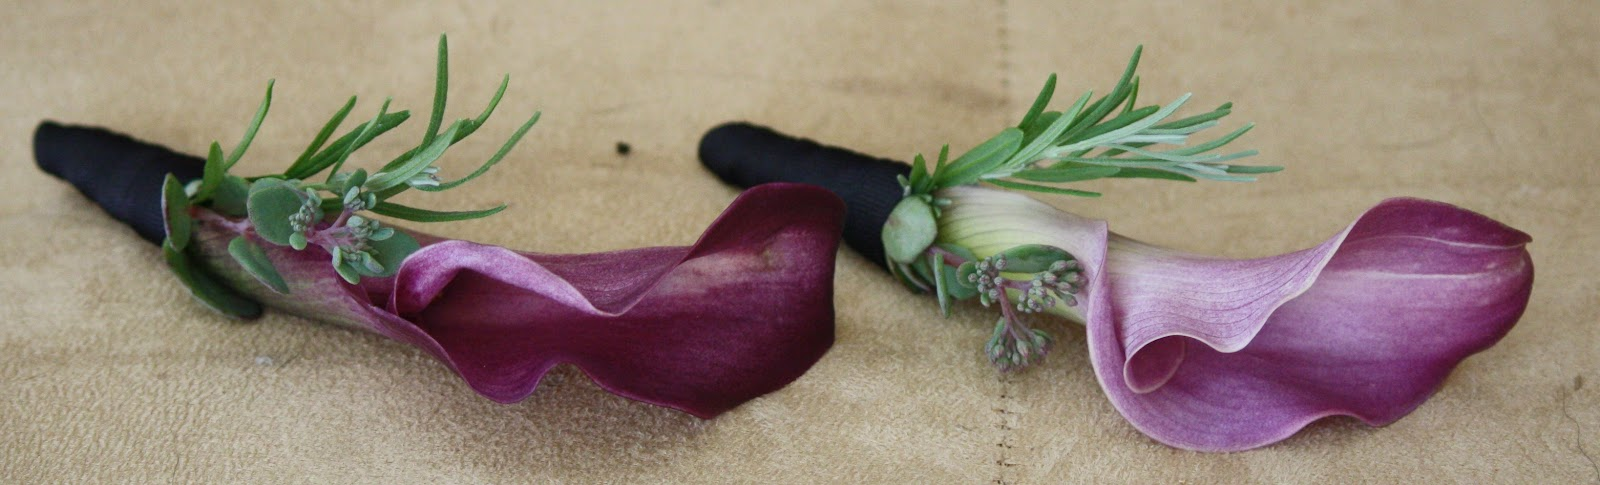 Calla Lily Boutonnieres - Boutonnieres - Wedding Flowers - Groom - Usher - Best Man - Groomsmen - Ushers - Groom's Boutonniere